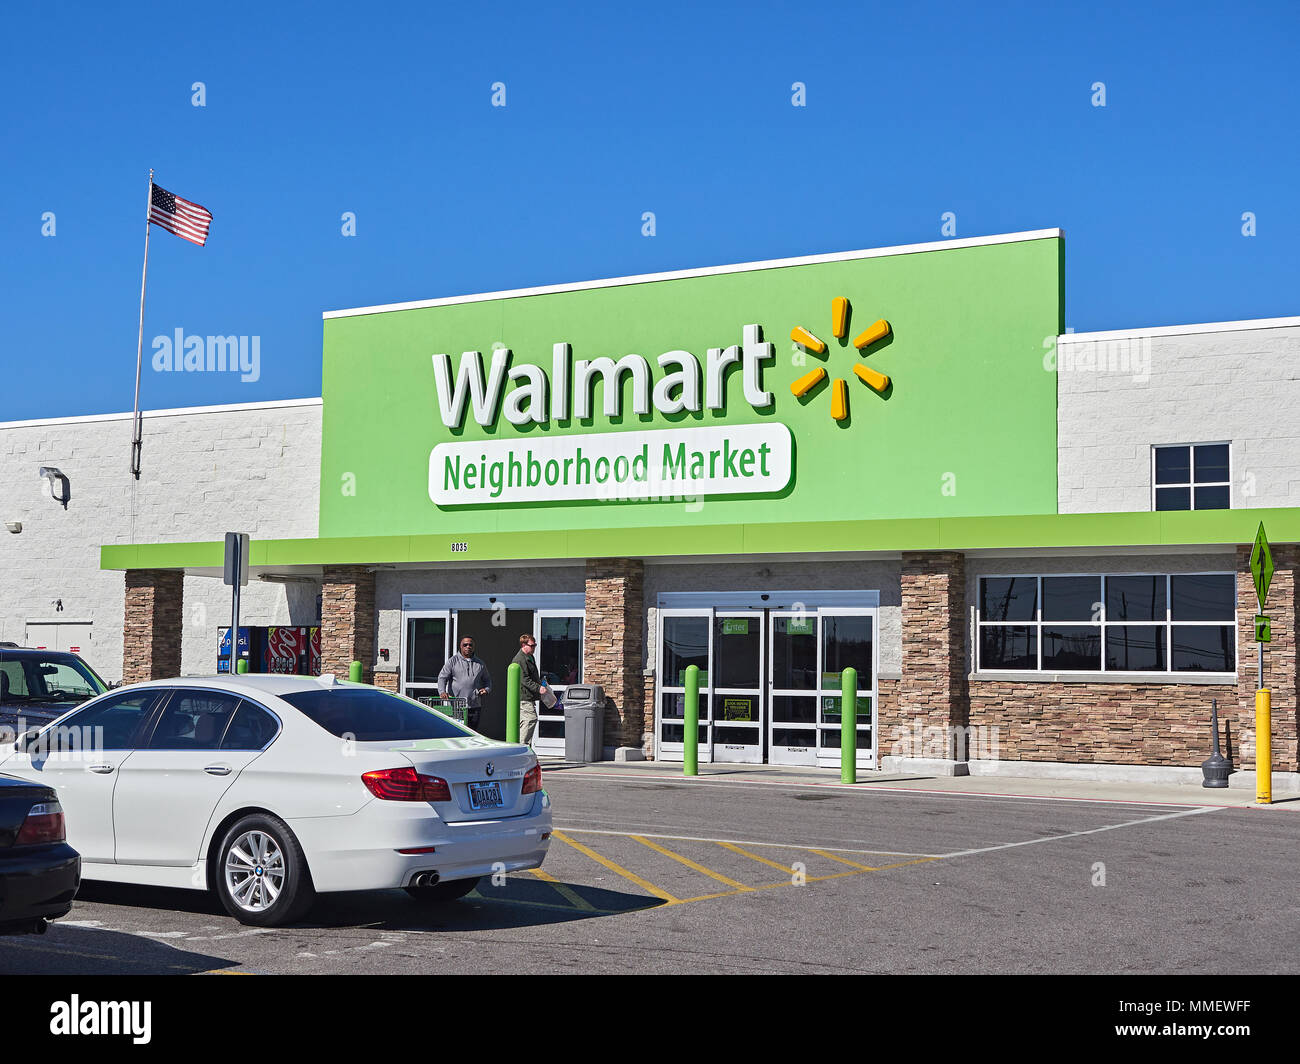 Exterior entrance to Walmart Neighborhood Market or grocery store showing the corporate logo and sign or signage in Montgomery Alabama, USA. - Stock Image